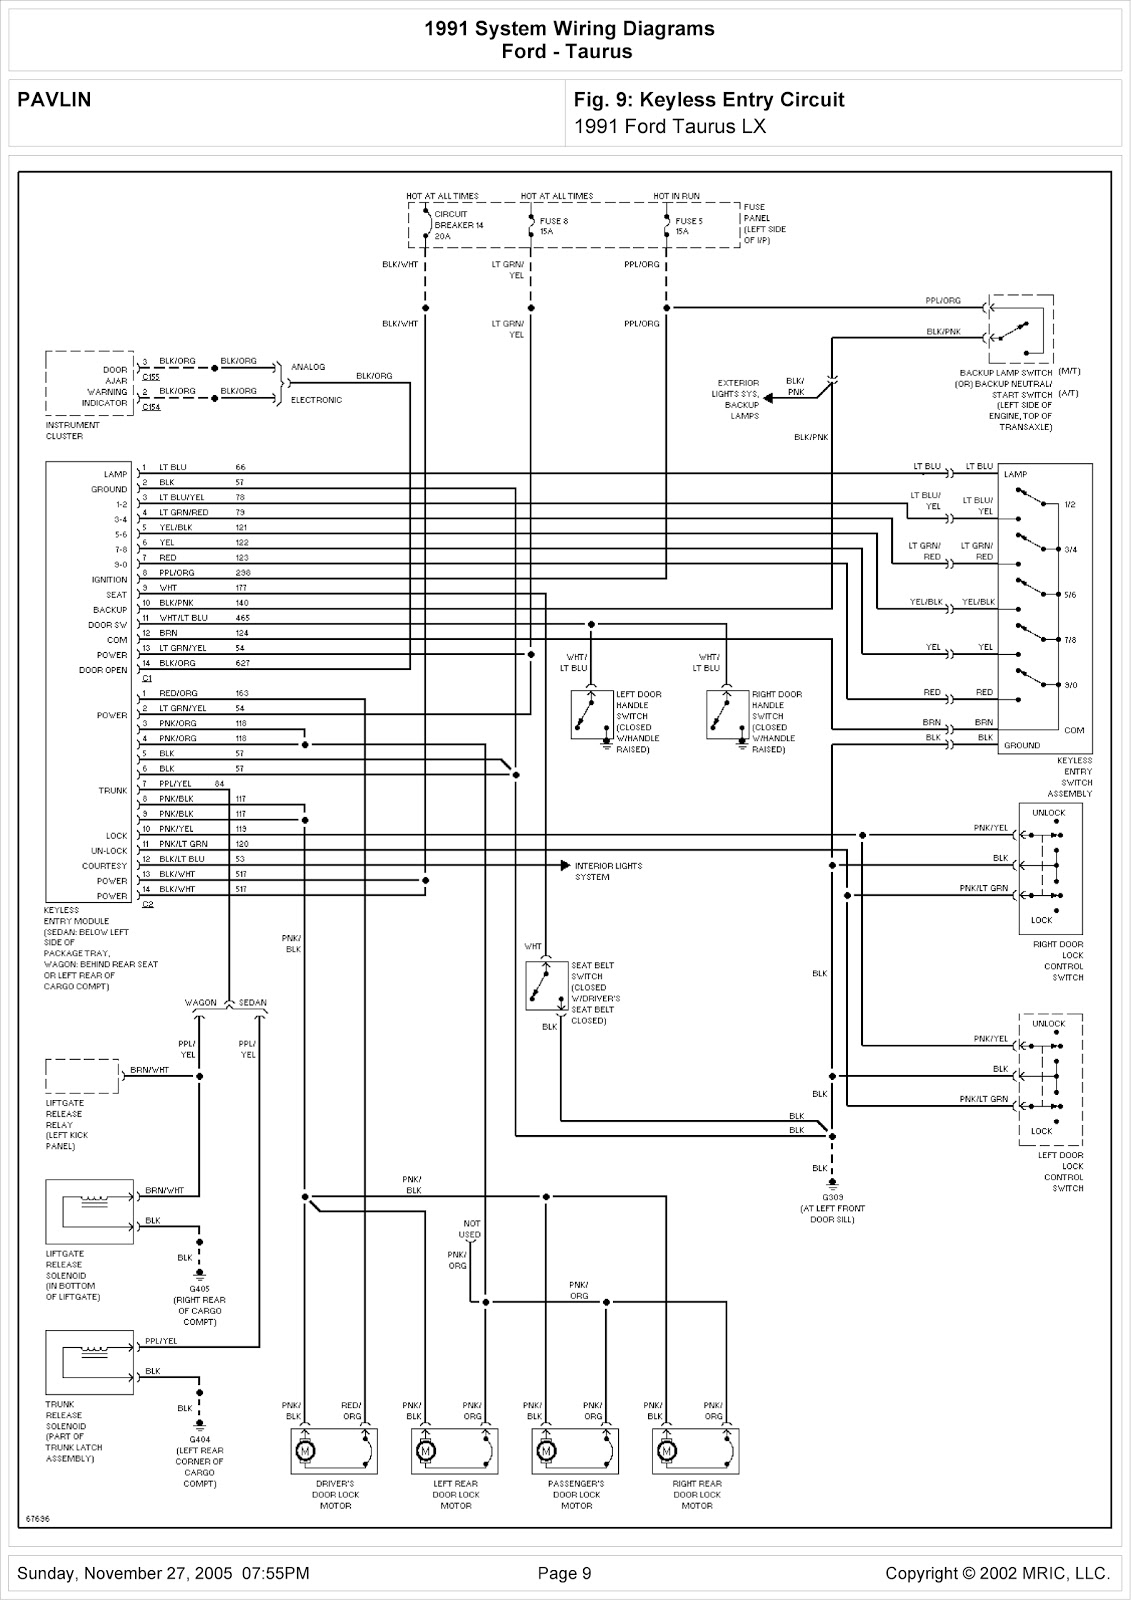 2011 ford taurus engine diagram 1991 ford taurus lx system wiring diagram for keyless ... 2011 ford taurus wiring diagram #1